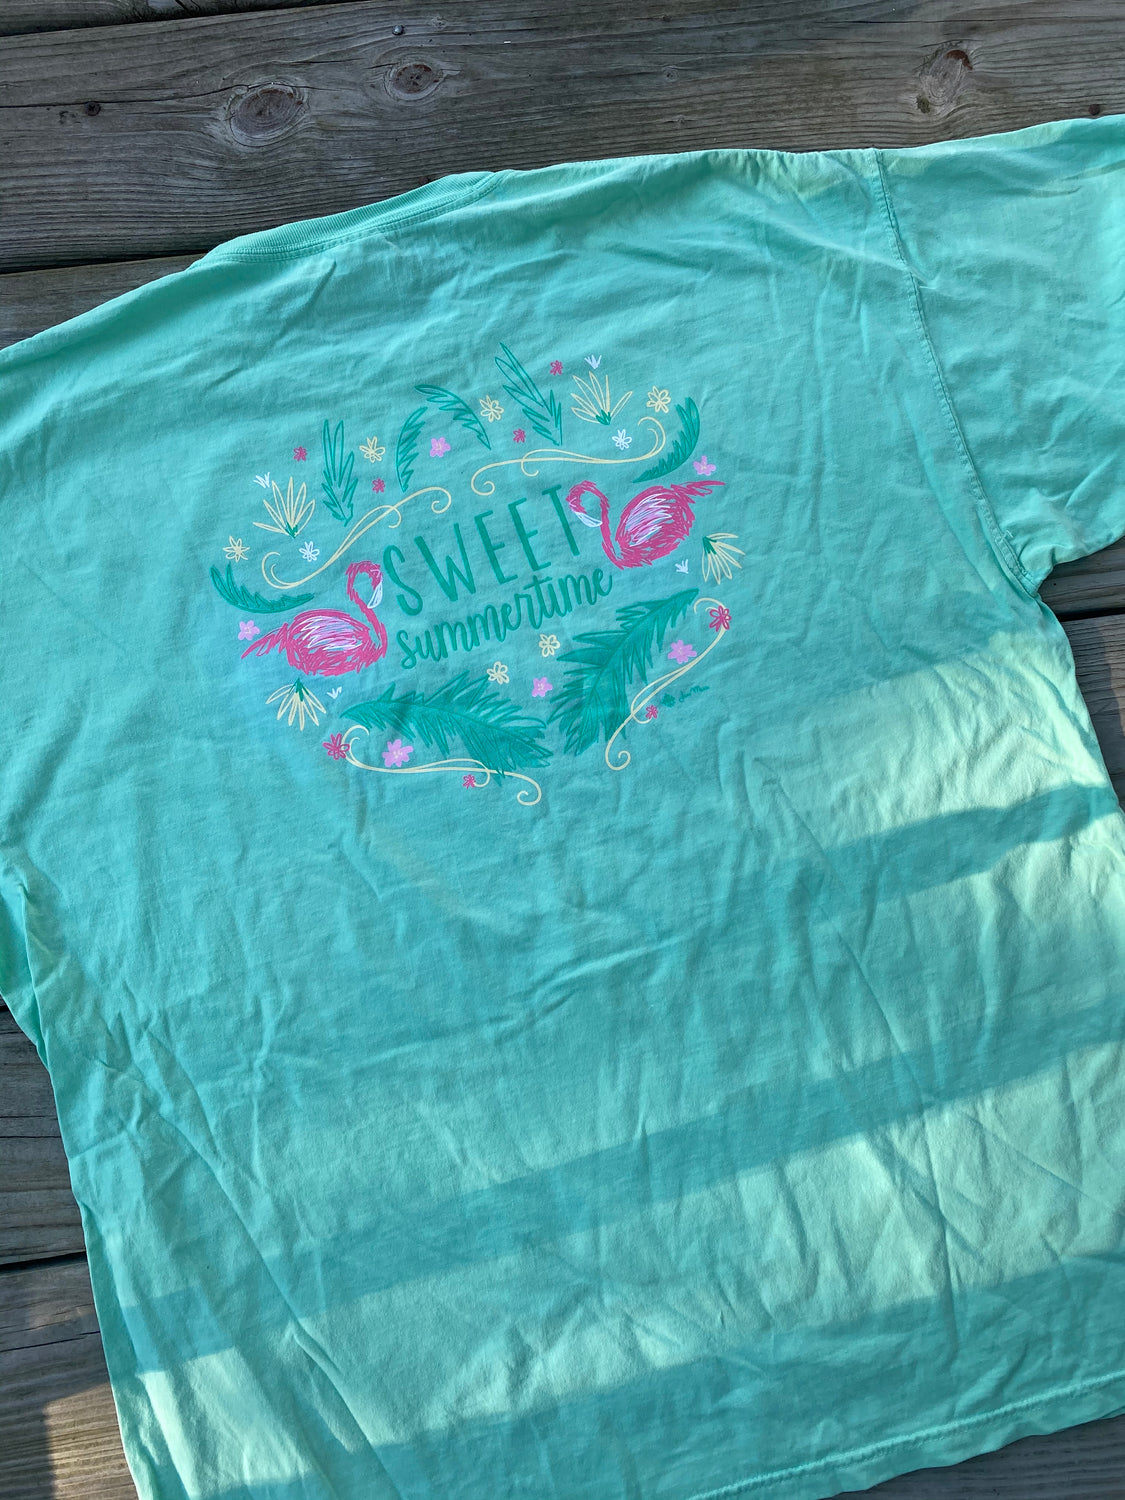 Sweet Summertime T-Shirt - Mint